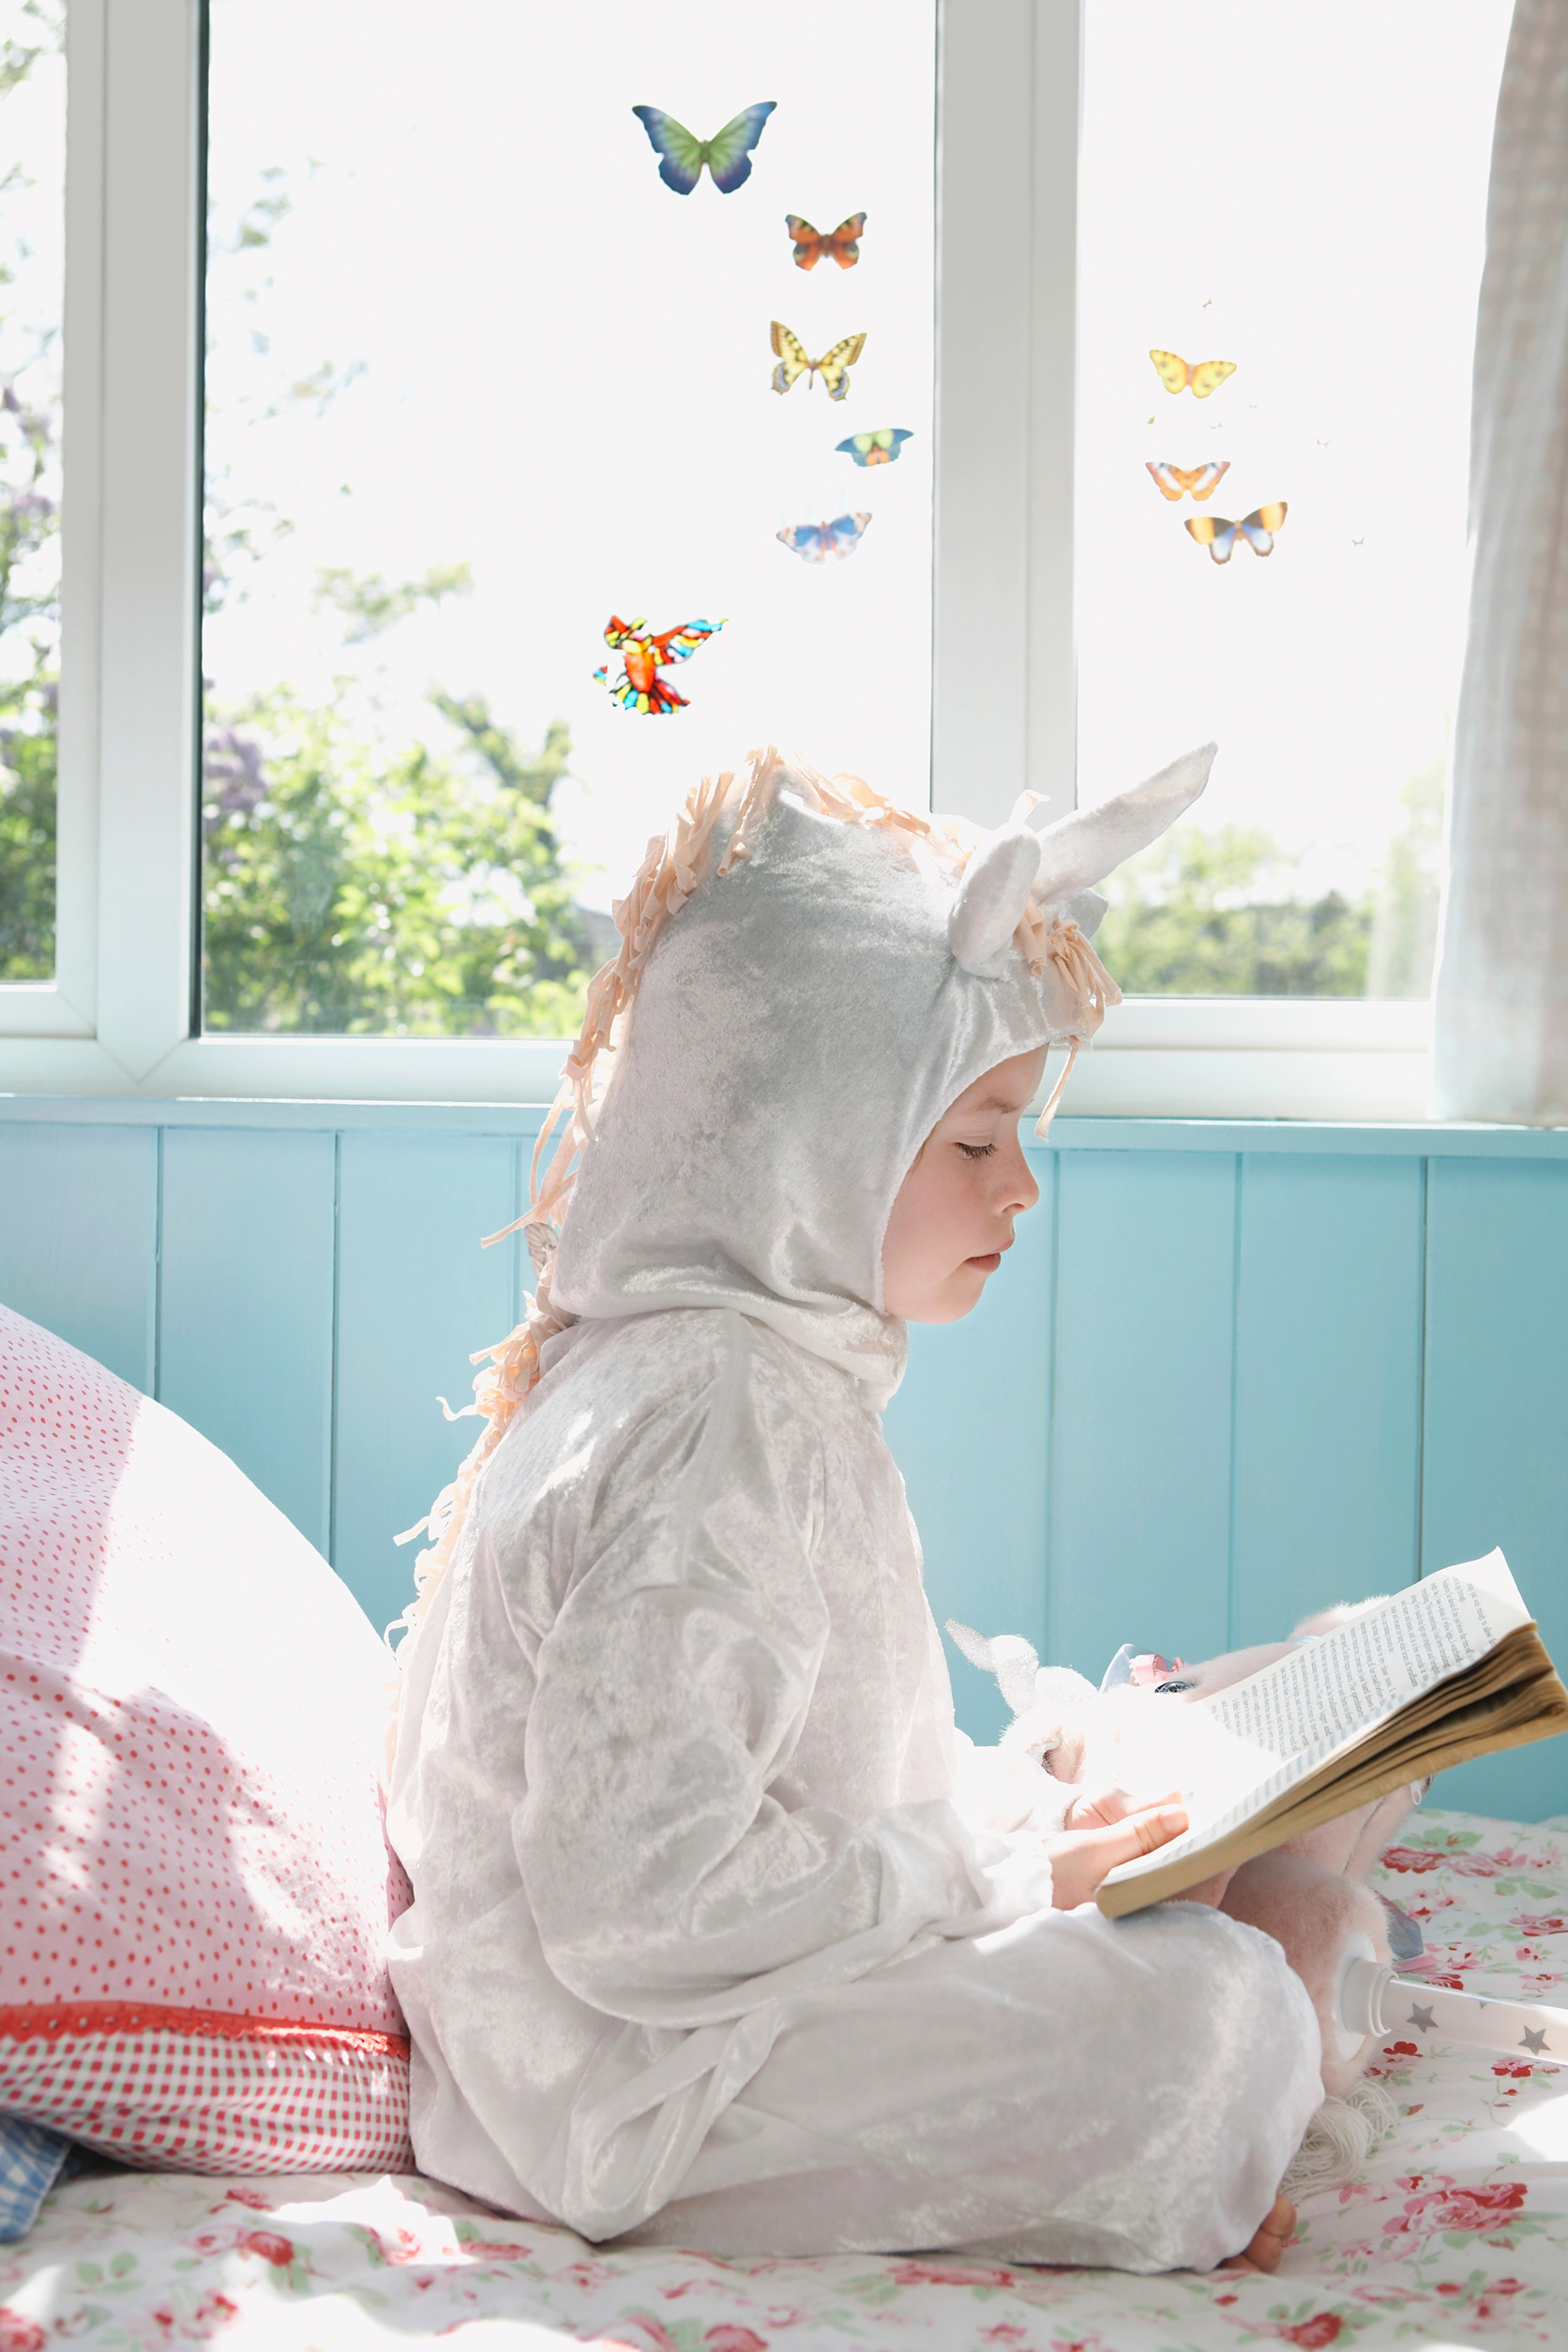 A cute young girl sitting on her bed in unicorn themed costume reading a storybook.